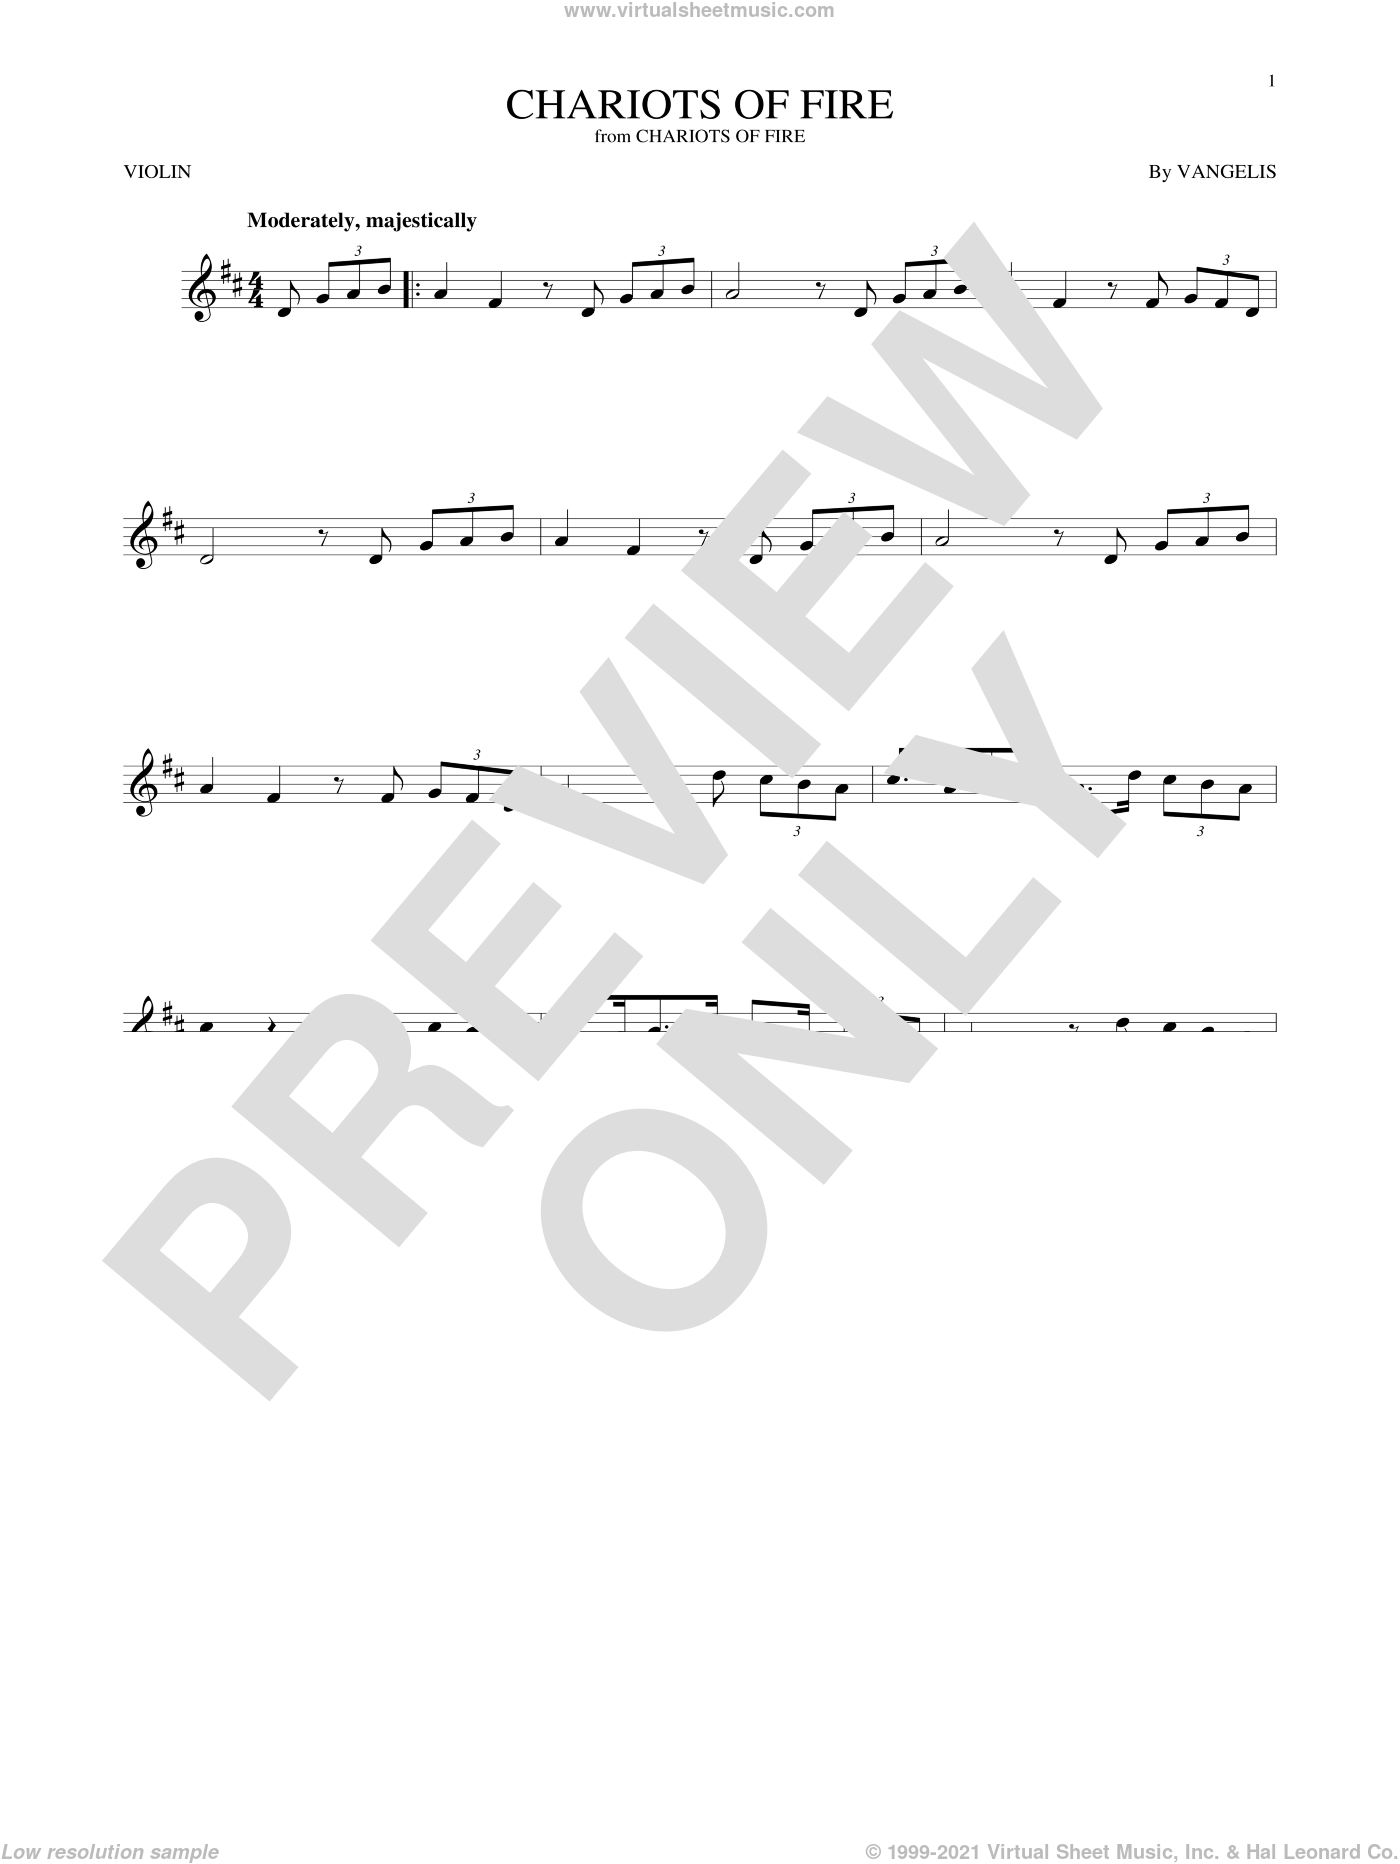 Chariots Of Fire sheet music for violin solo by Vangelis, intermediate